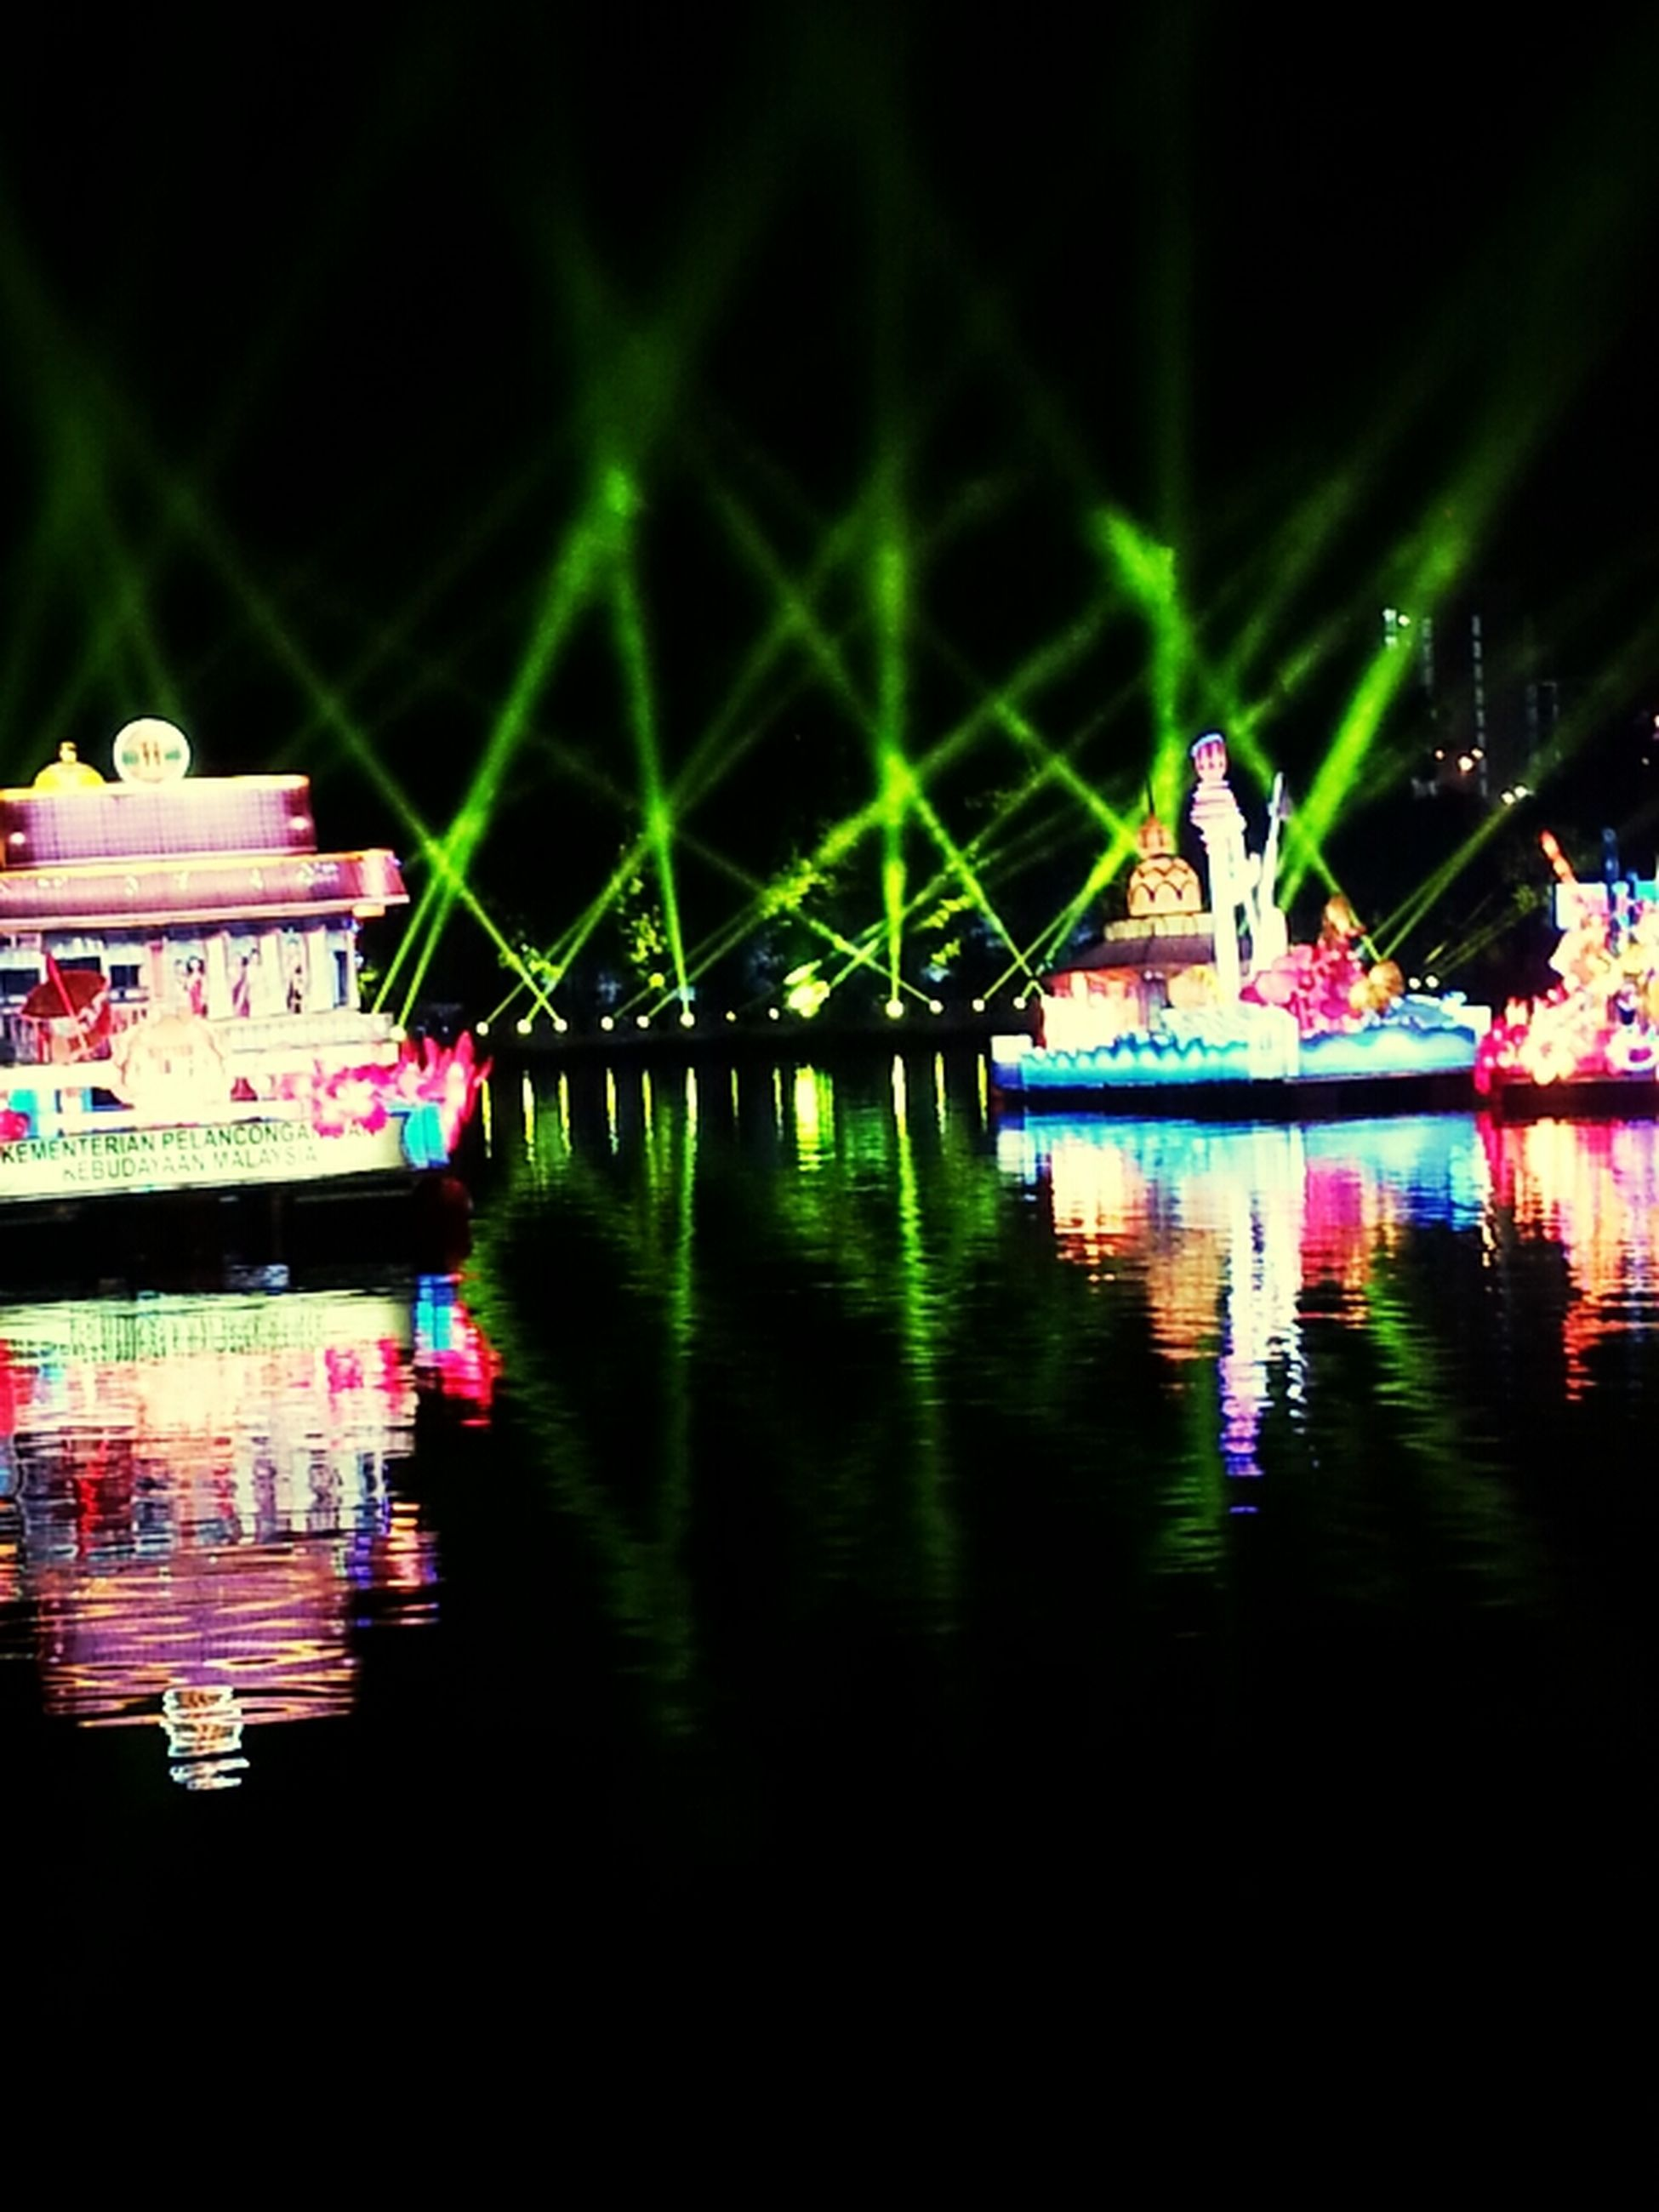 water, waterfront, nautical vessel, reflection, night, boat, transportation, illuminated, mode of transport, river, lake, moored, built structure, architecture, building exterior, outdoors, no people, nature, travel, tranquility